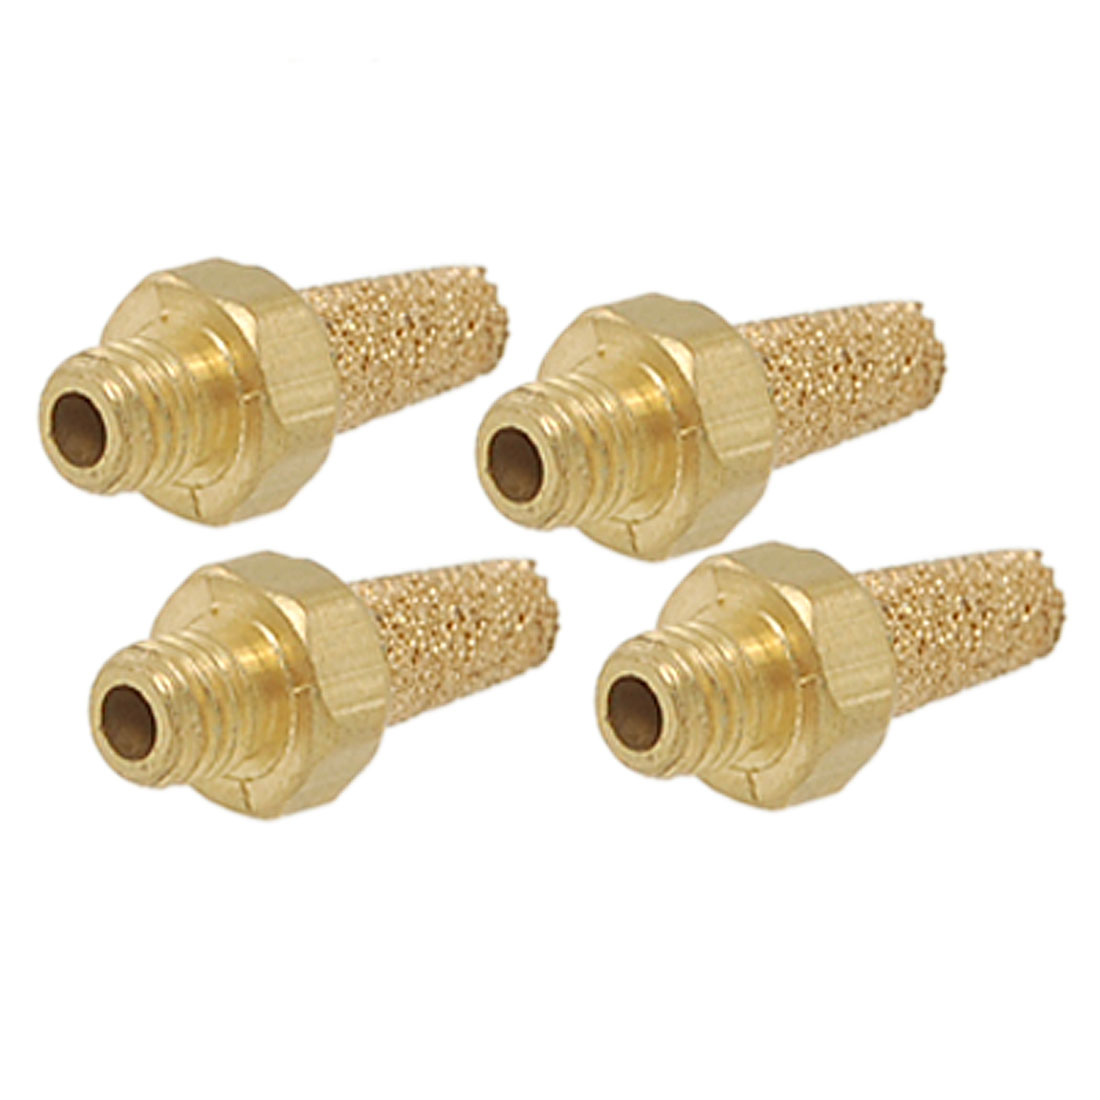 4 Pcs M5 Exhaust Air Noise Sintered Brass Pneumatic Muffler